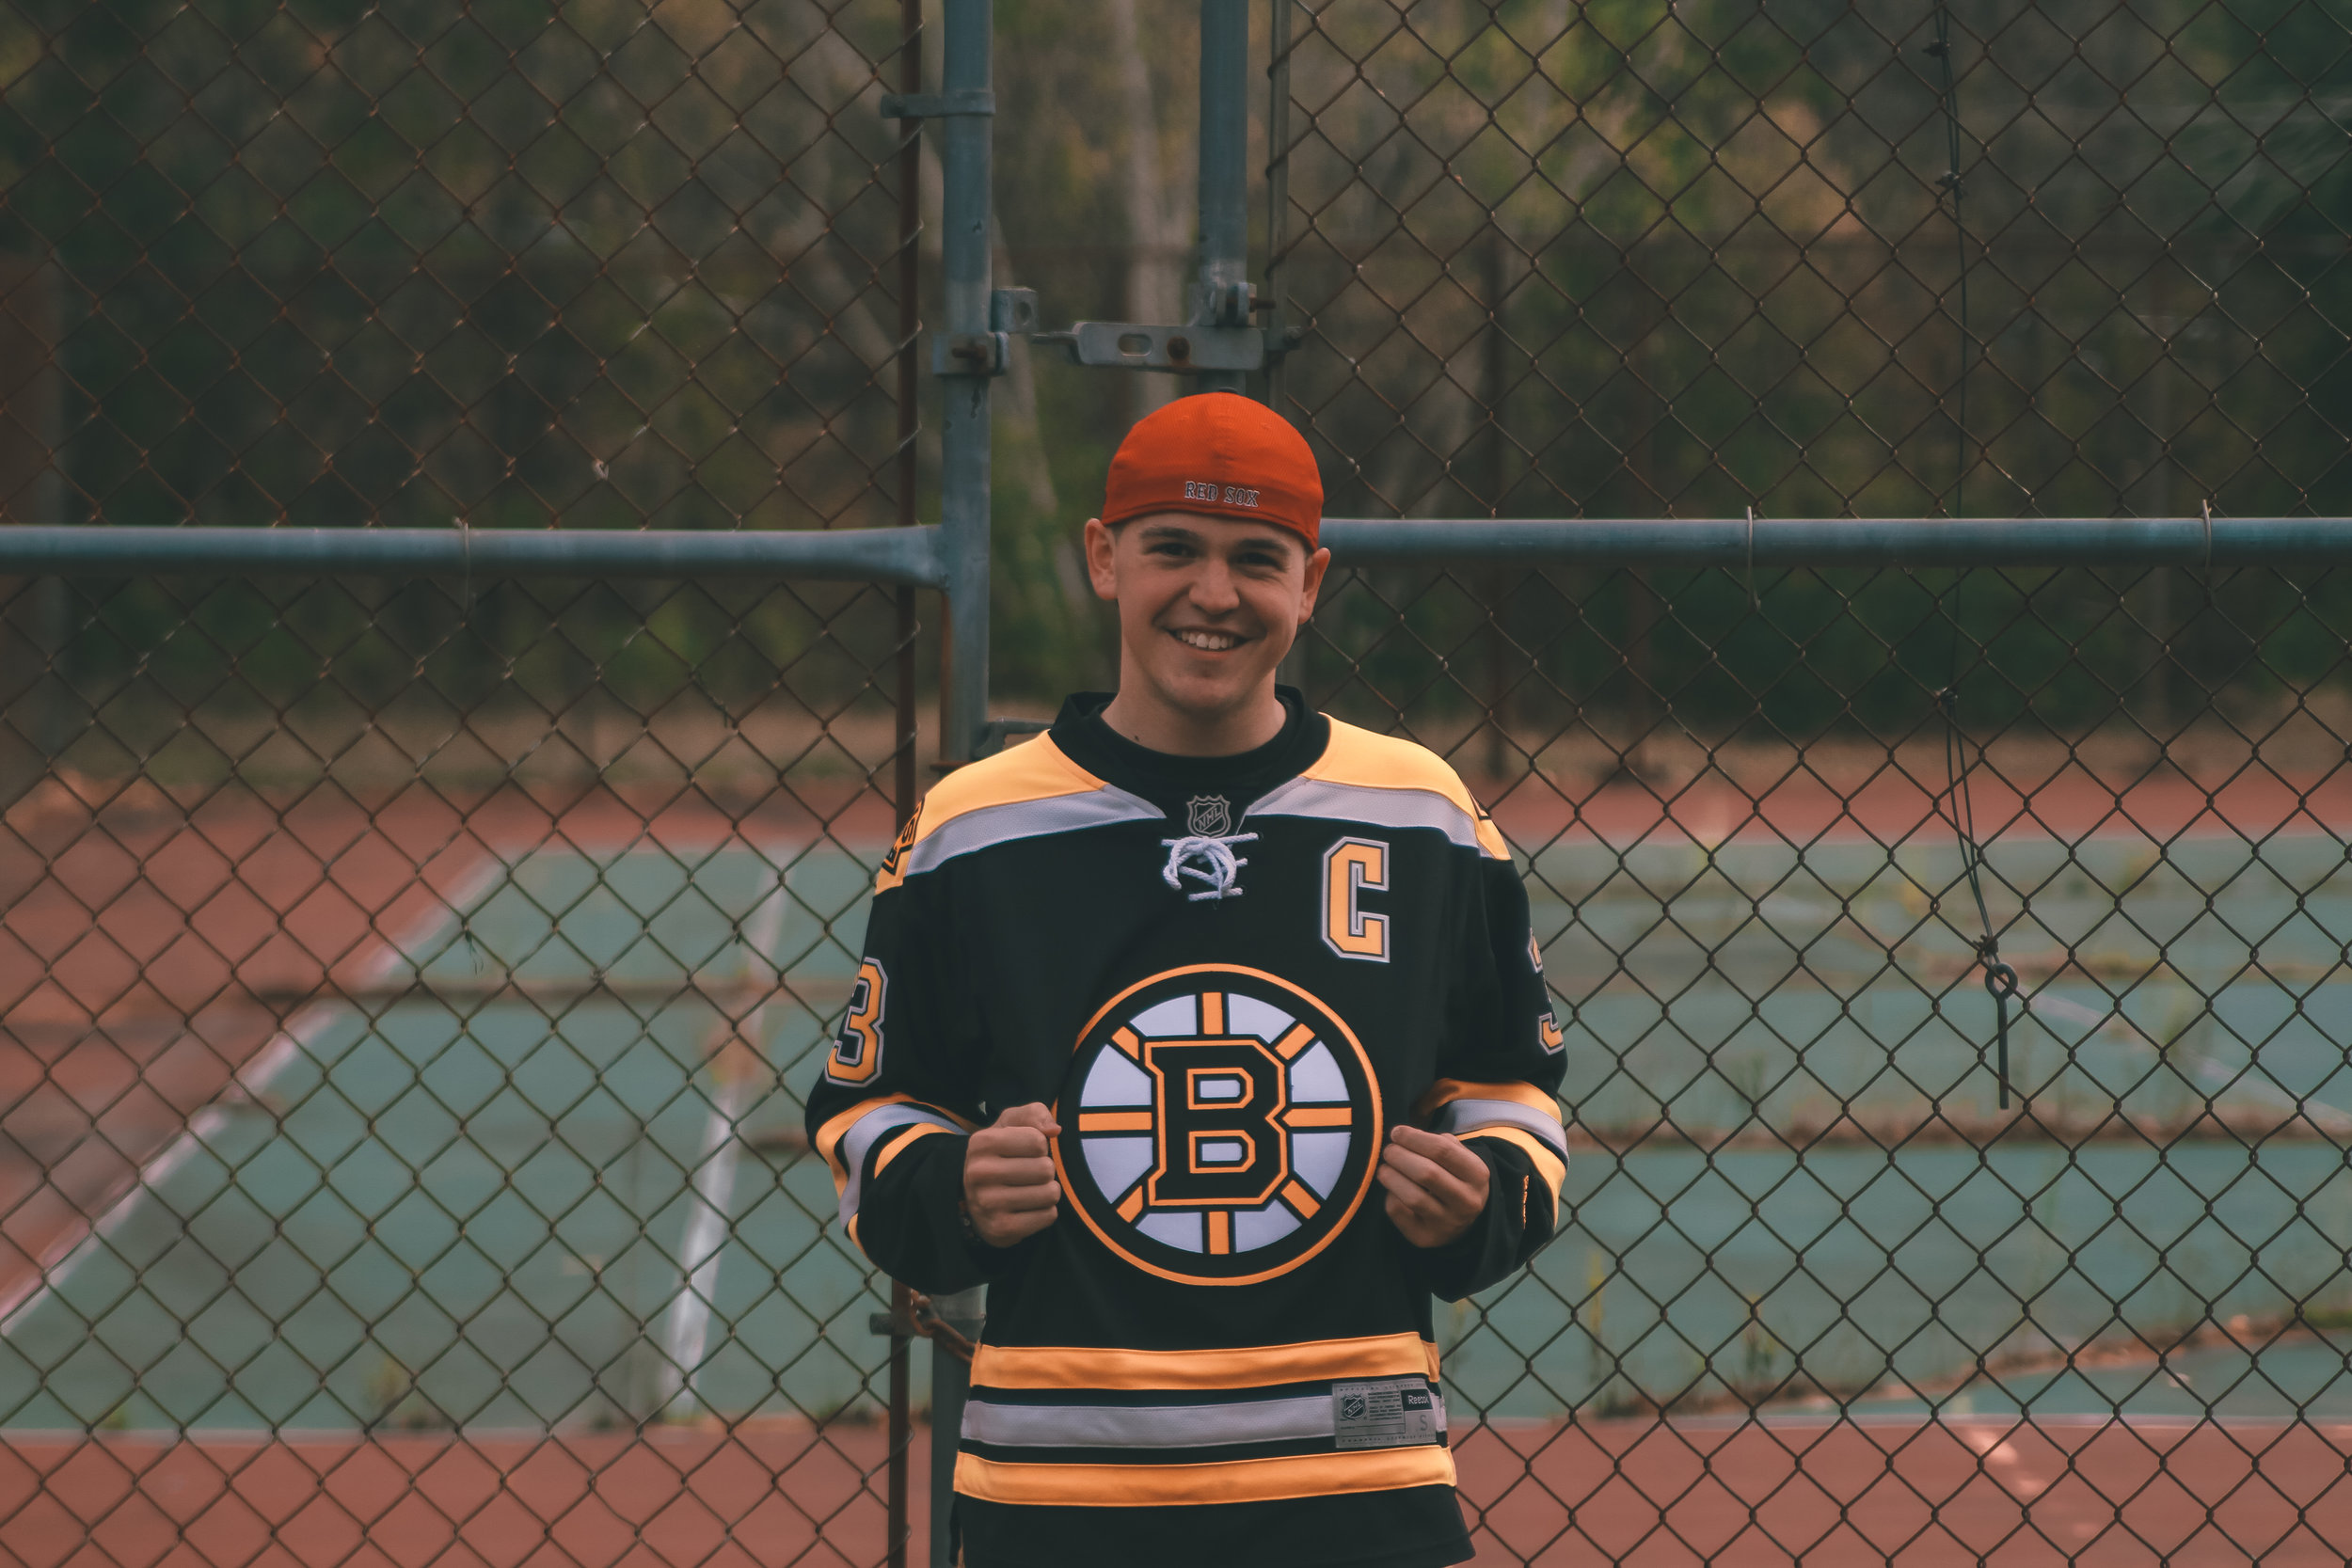 Spencer Lindsay. I'm a junior, Recreation, sport and wellness major from New Hampshire. I grew up loving boston sports and I still do. I hope to one day be working in the front office of the boston bruins.